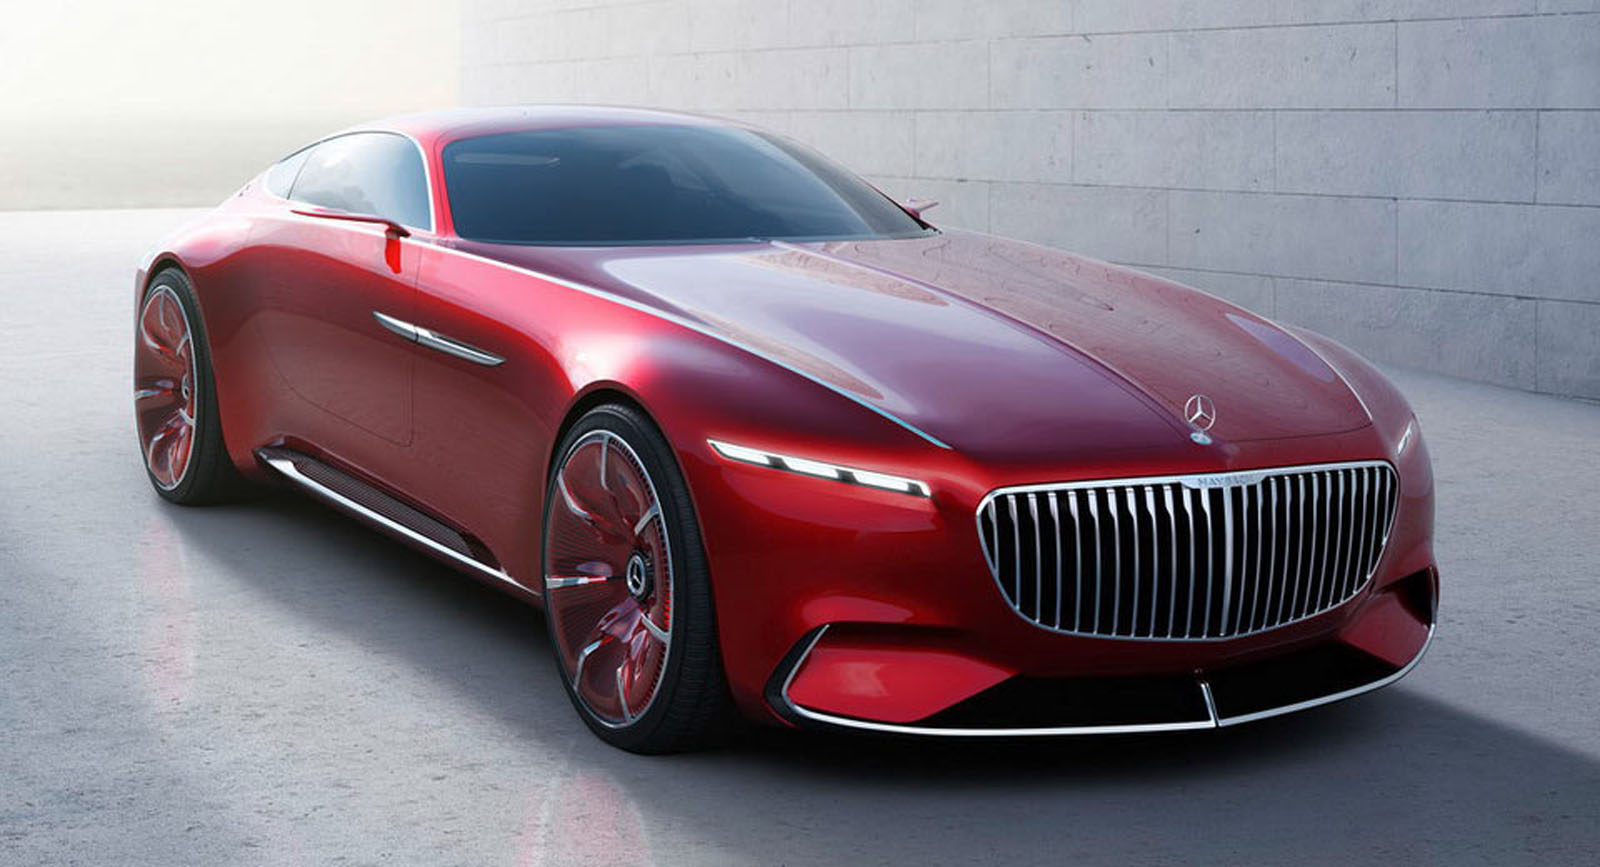 Six Metre Vision Mercedes-Maybach 6 Leaked Ahead Of Debut advise